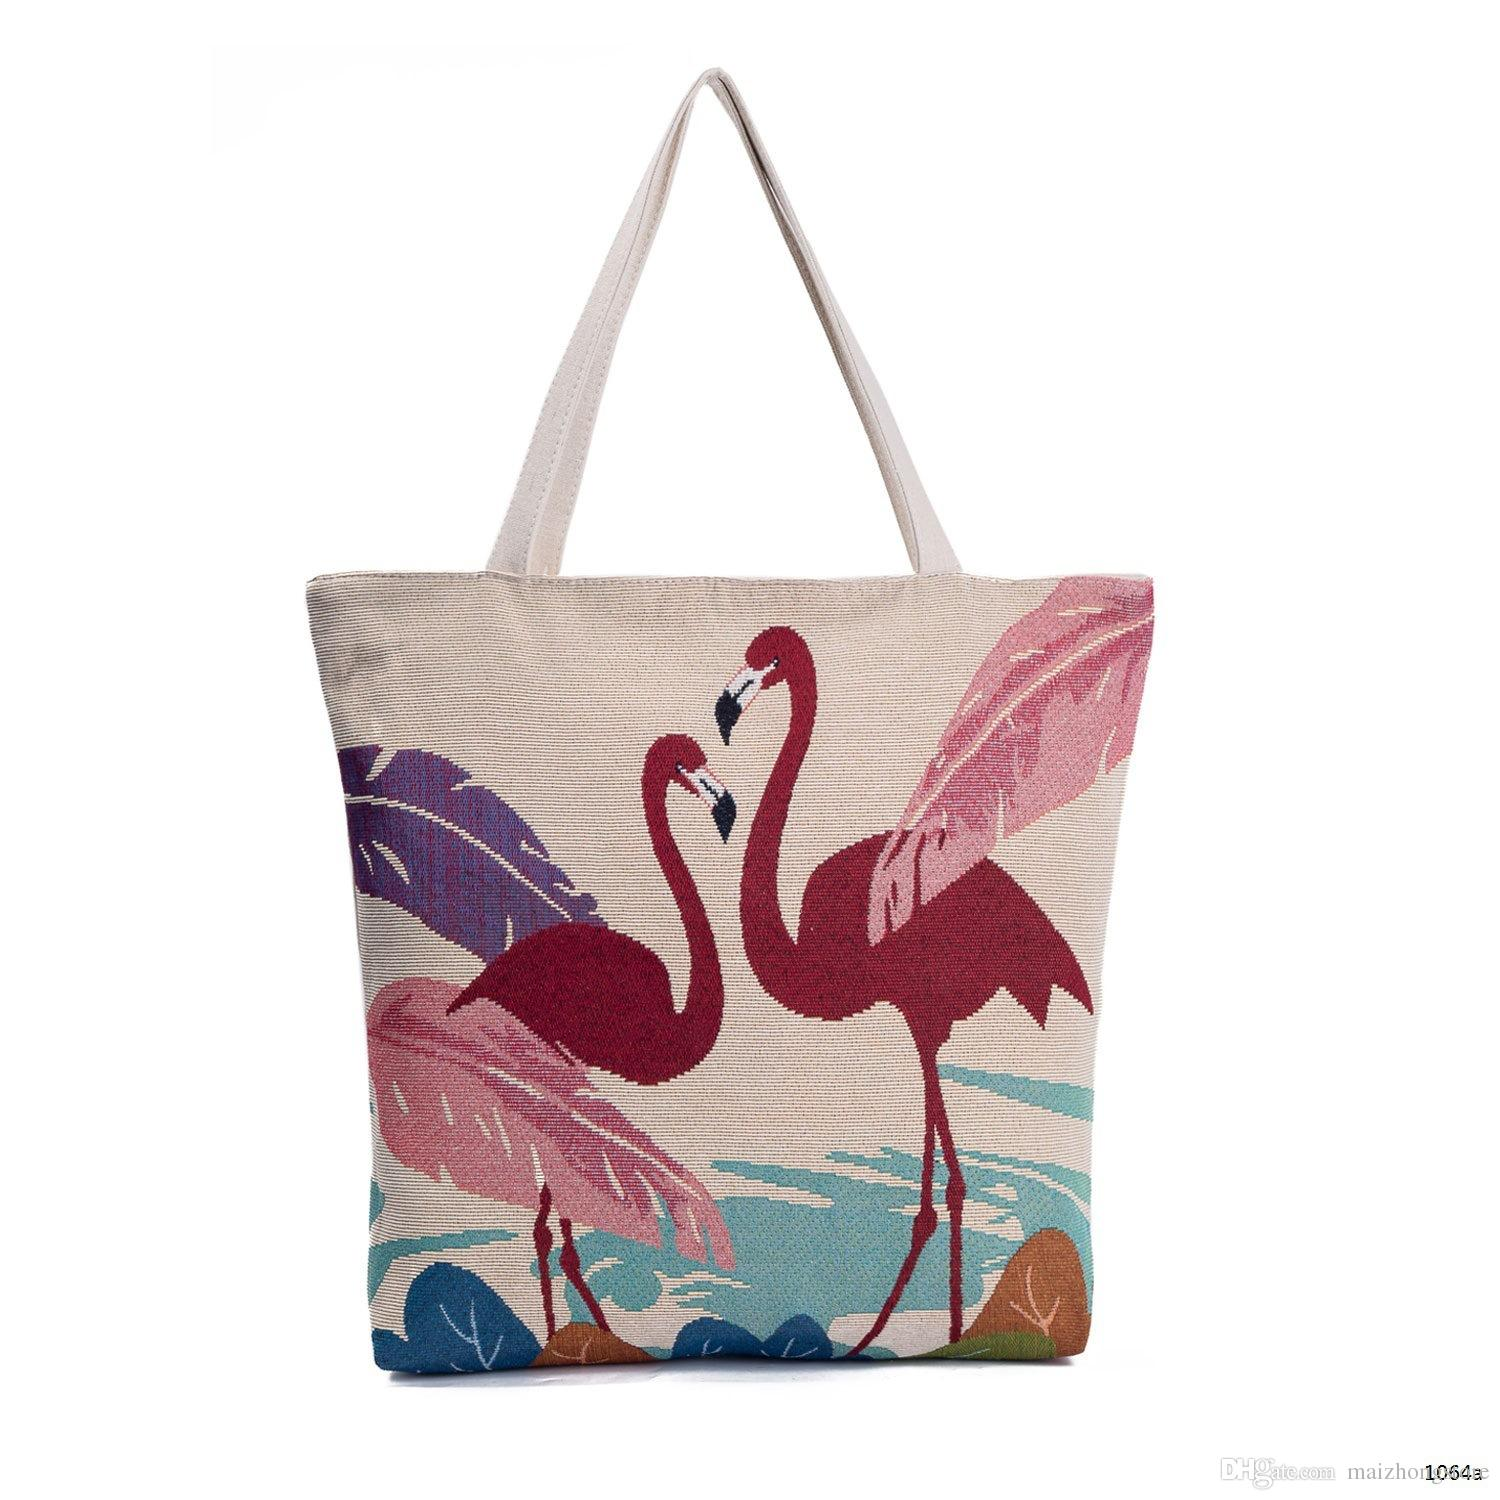 Flamingo Shopping Bag 2018 New Designer Canvas Women Handbags Large  Capacity Cheap Women Designer Bags Causal Tote Bags Handbag Wholesale  Womens Bags From ... 3812dacee8e53